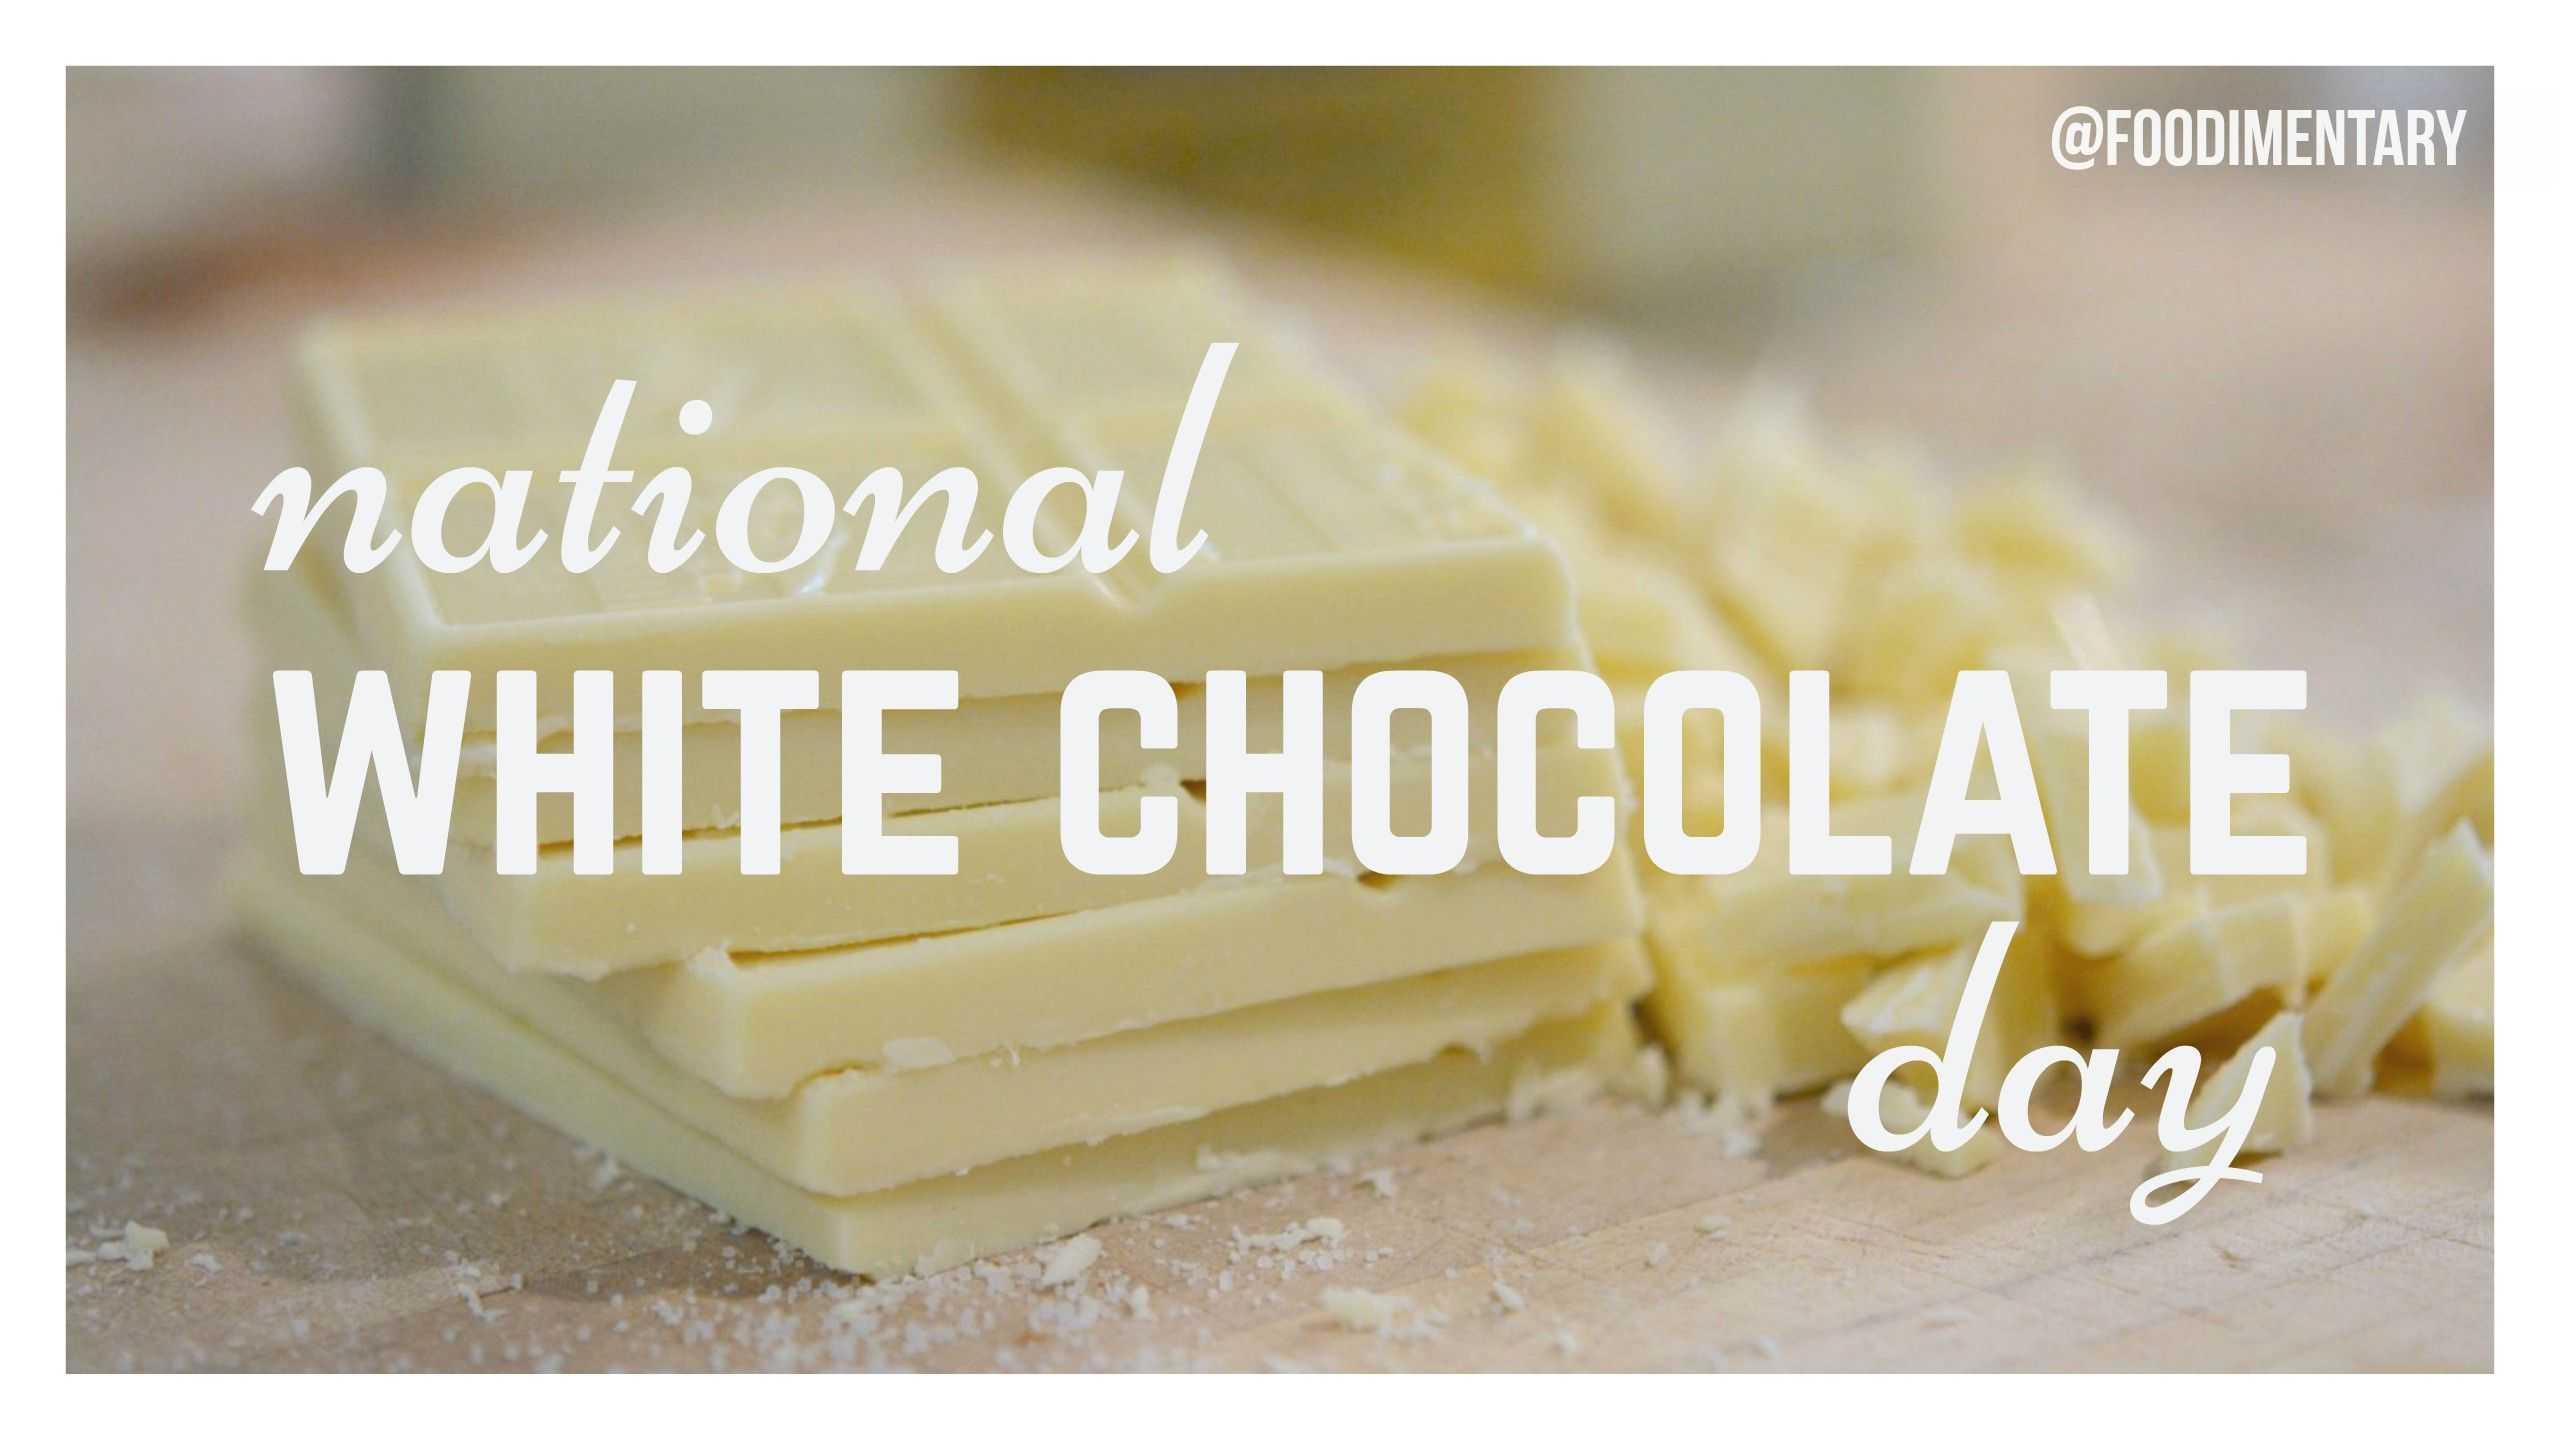 September 23rd Is National White Chocolate Day Happy National White Chocolate Day Https Foodimentary Com Chocolate Day Holiday Recipes White Chocolate